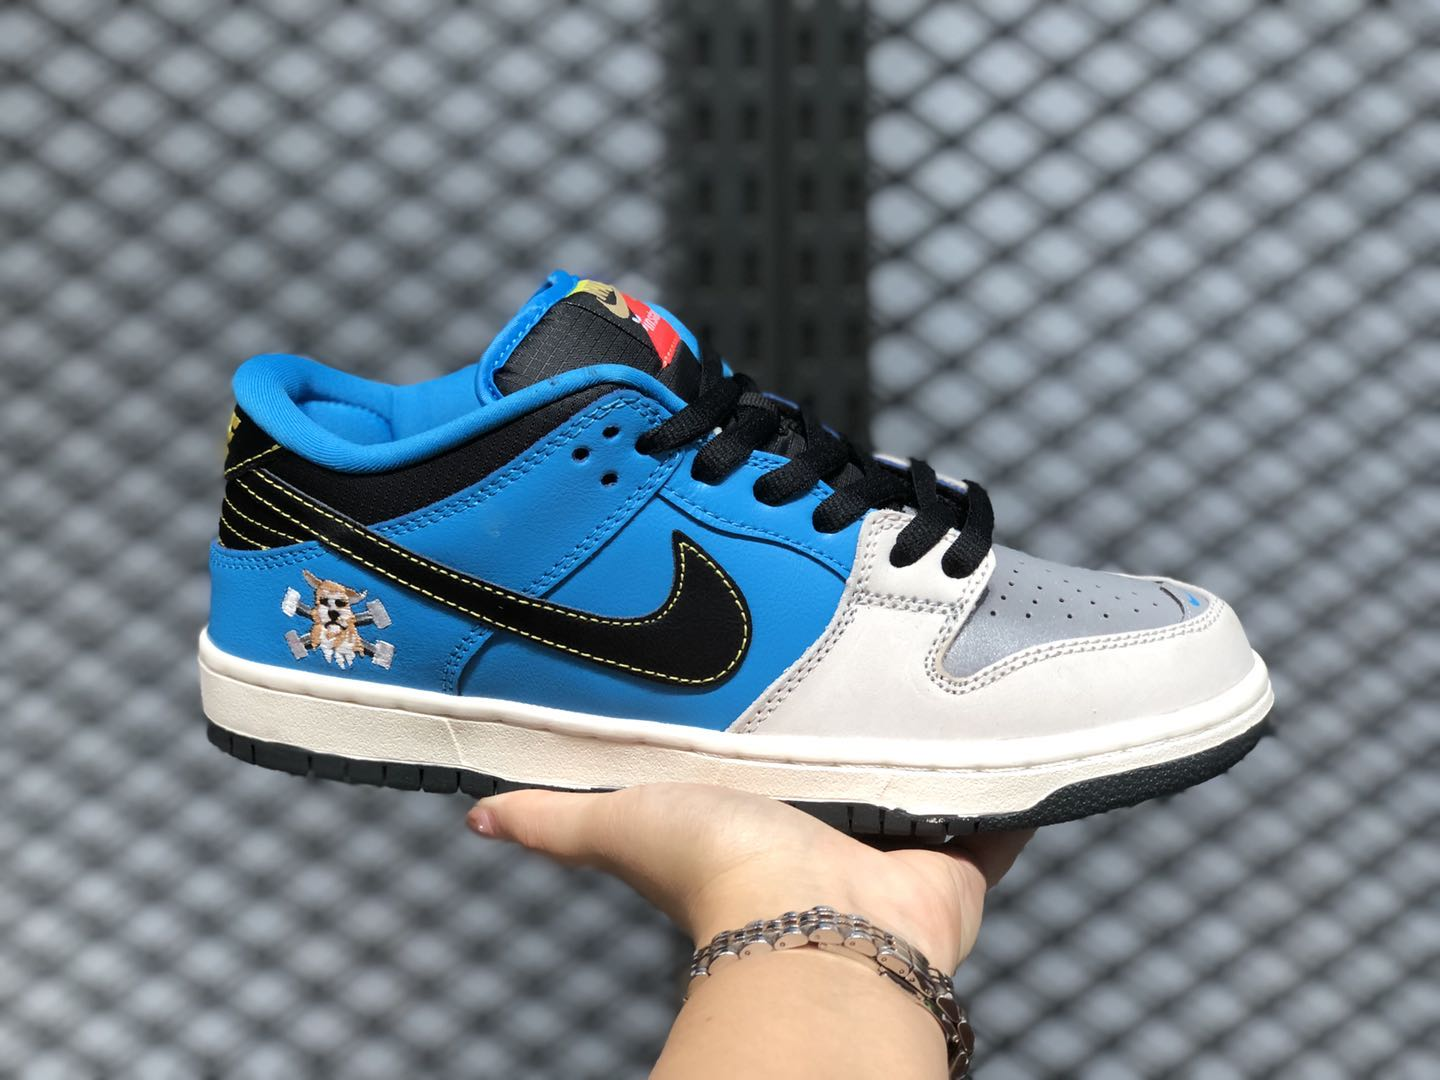 Instant Skateboards x Nike SB Dunk Low Trainers For Sale CZ5128-400